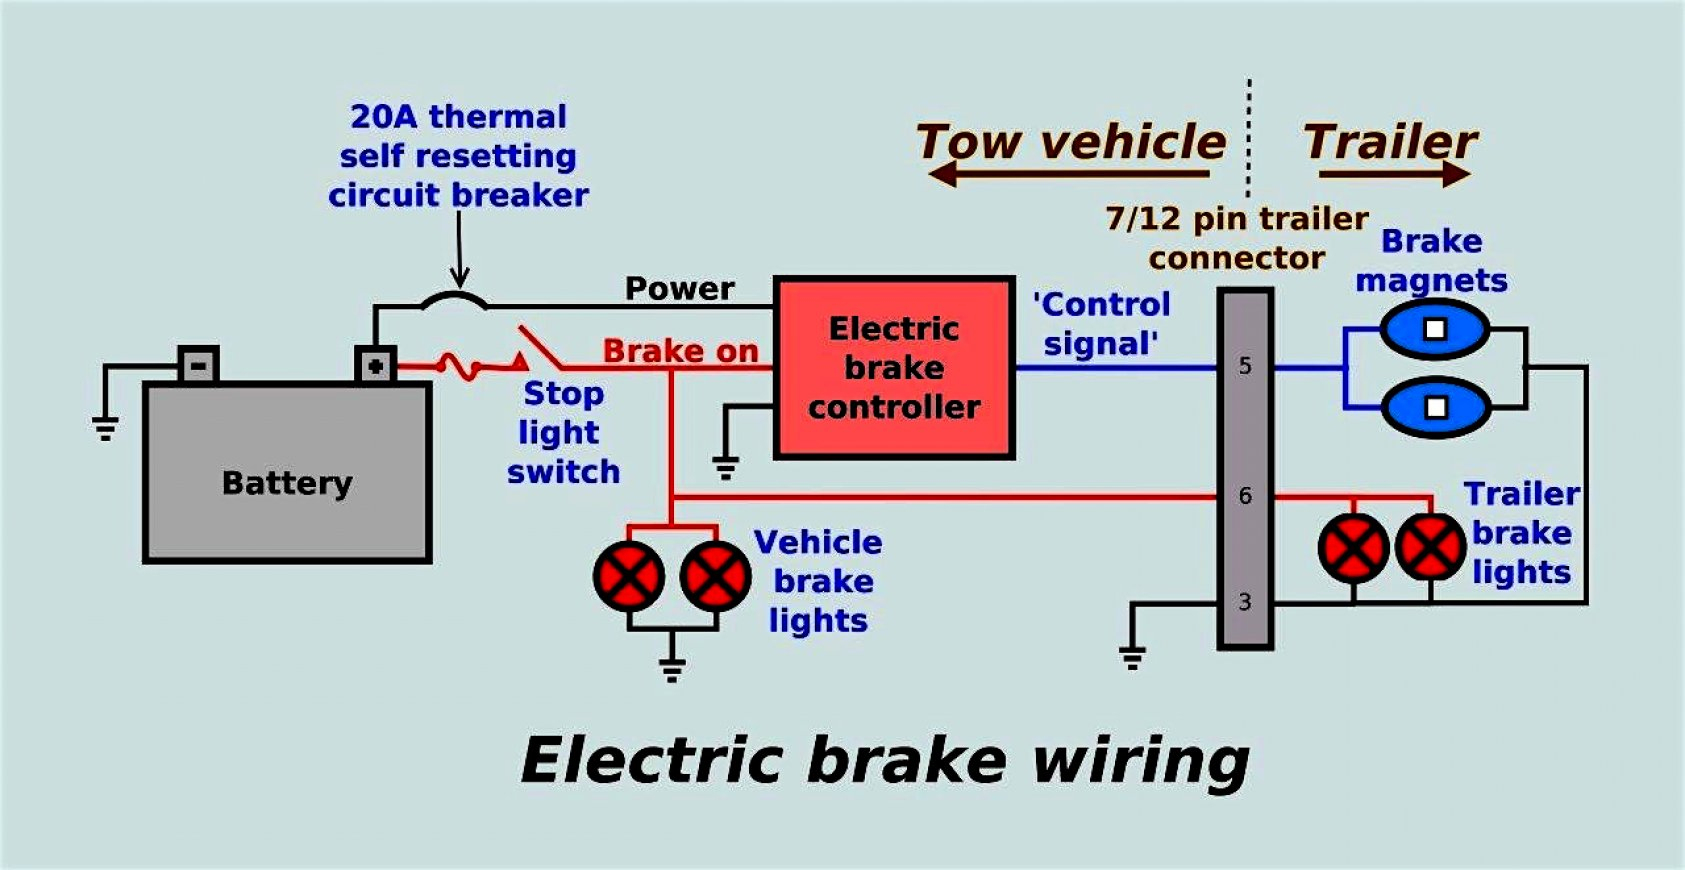 Electric Trailer Breakaway Wiring Diagram | Wiring Diagram - Trailer Brake Breakaway Wiring Diagram